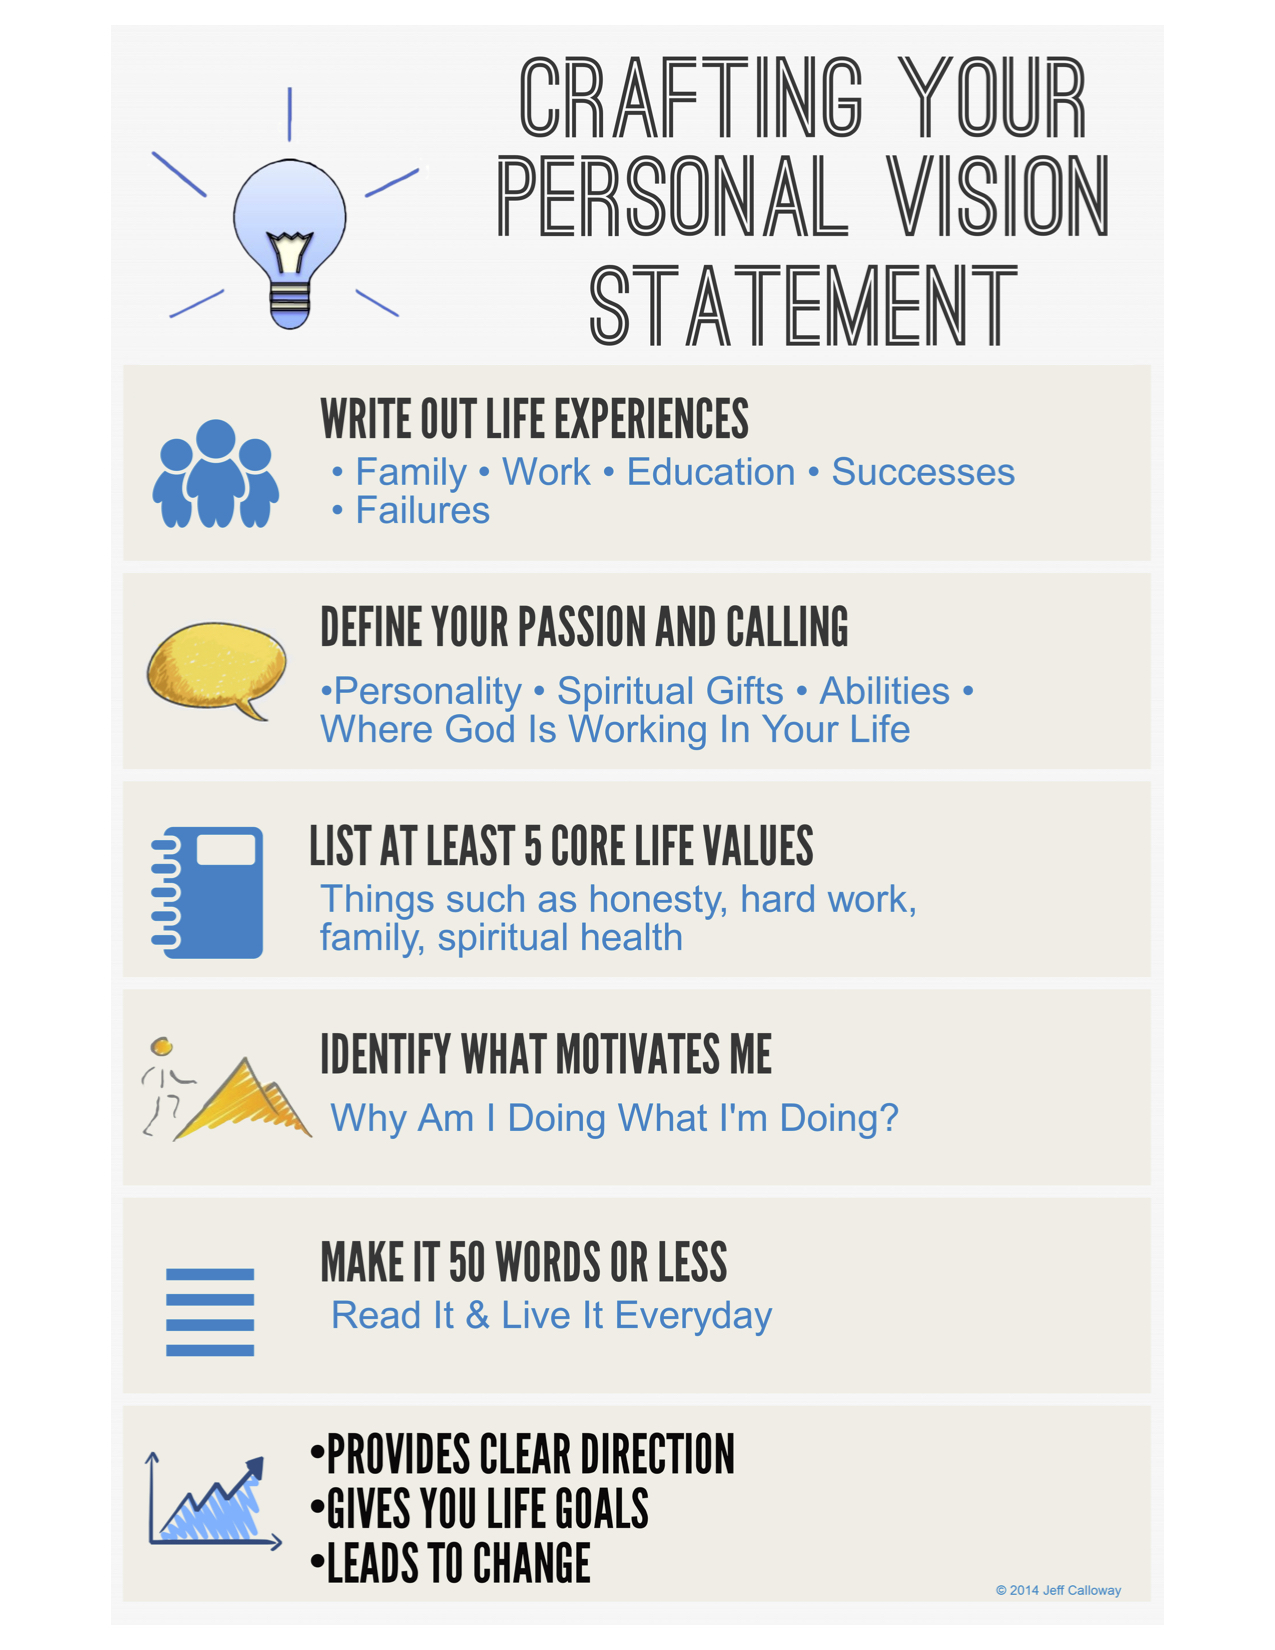 Crafting a personal vision statement jeff calloway for Vision statement template free